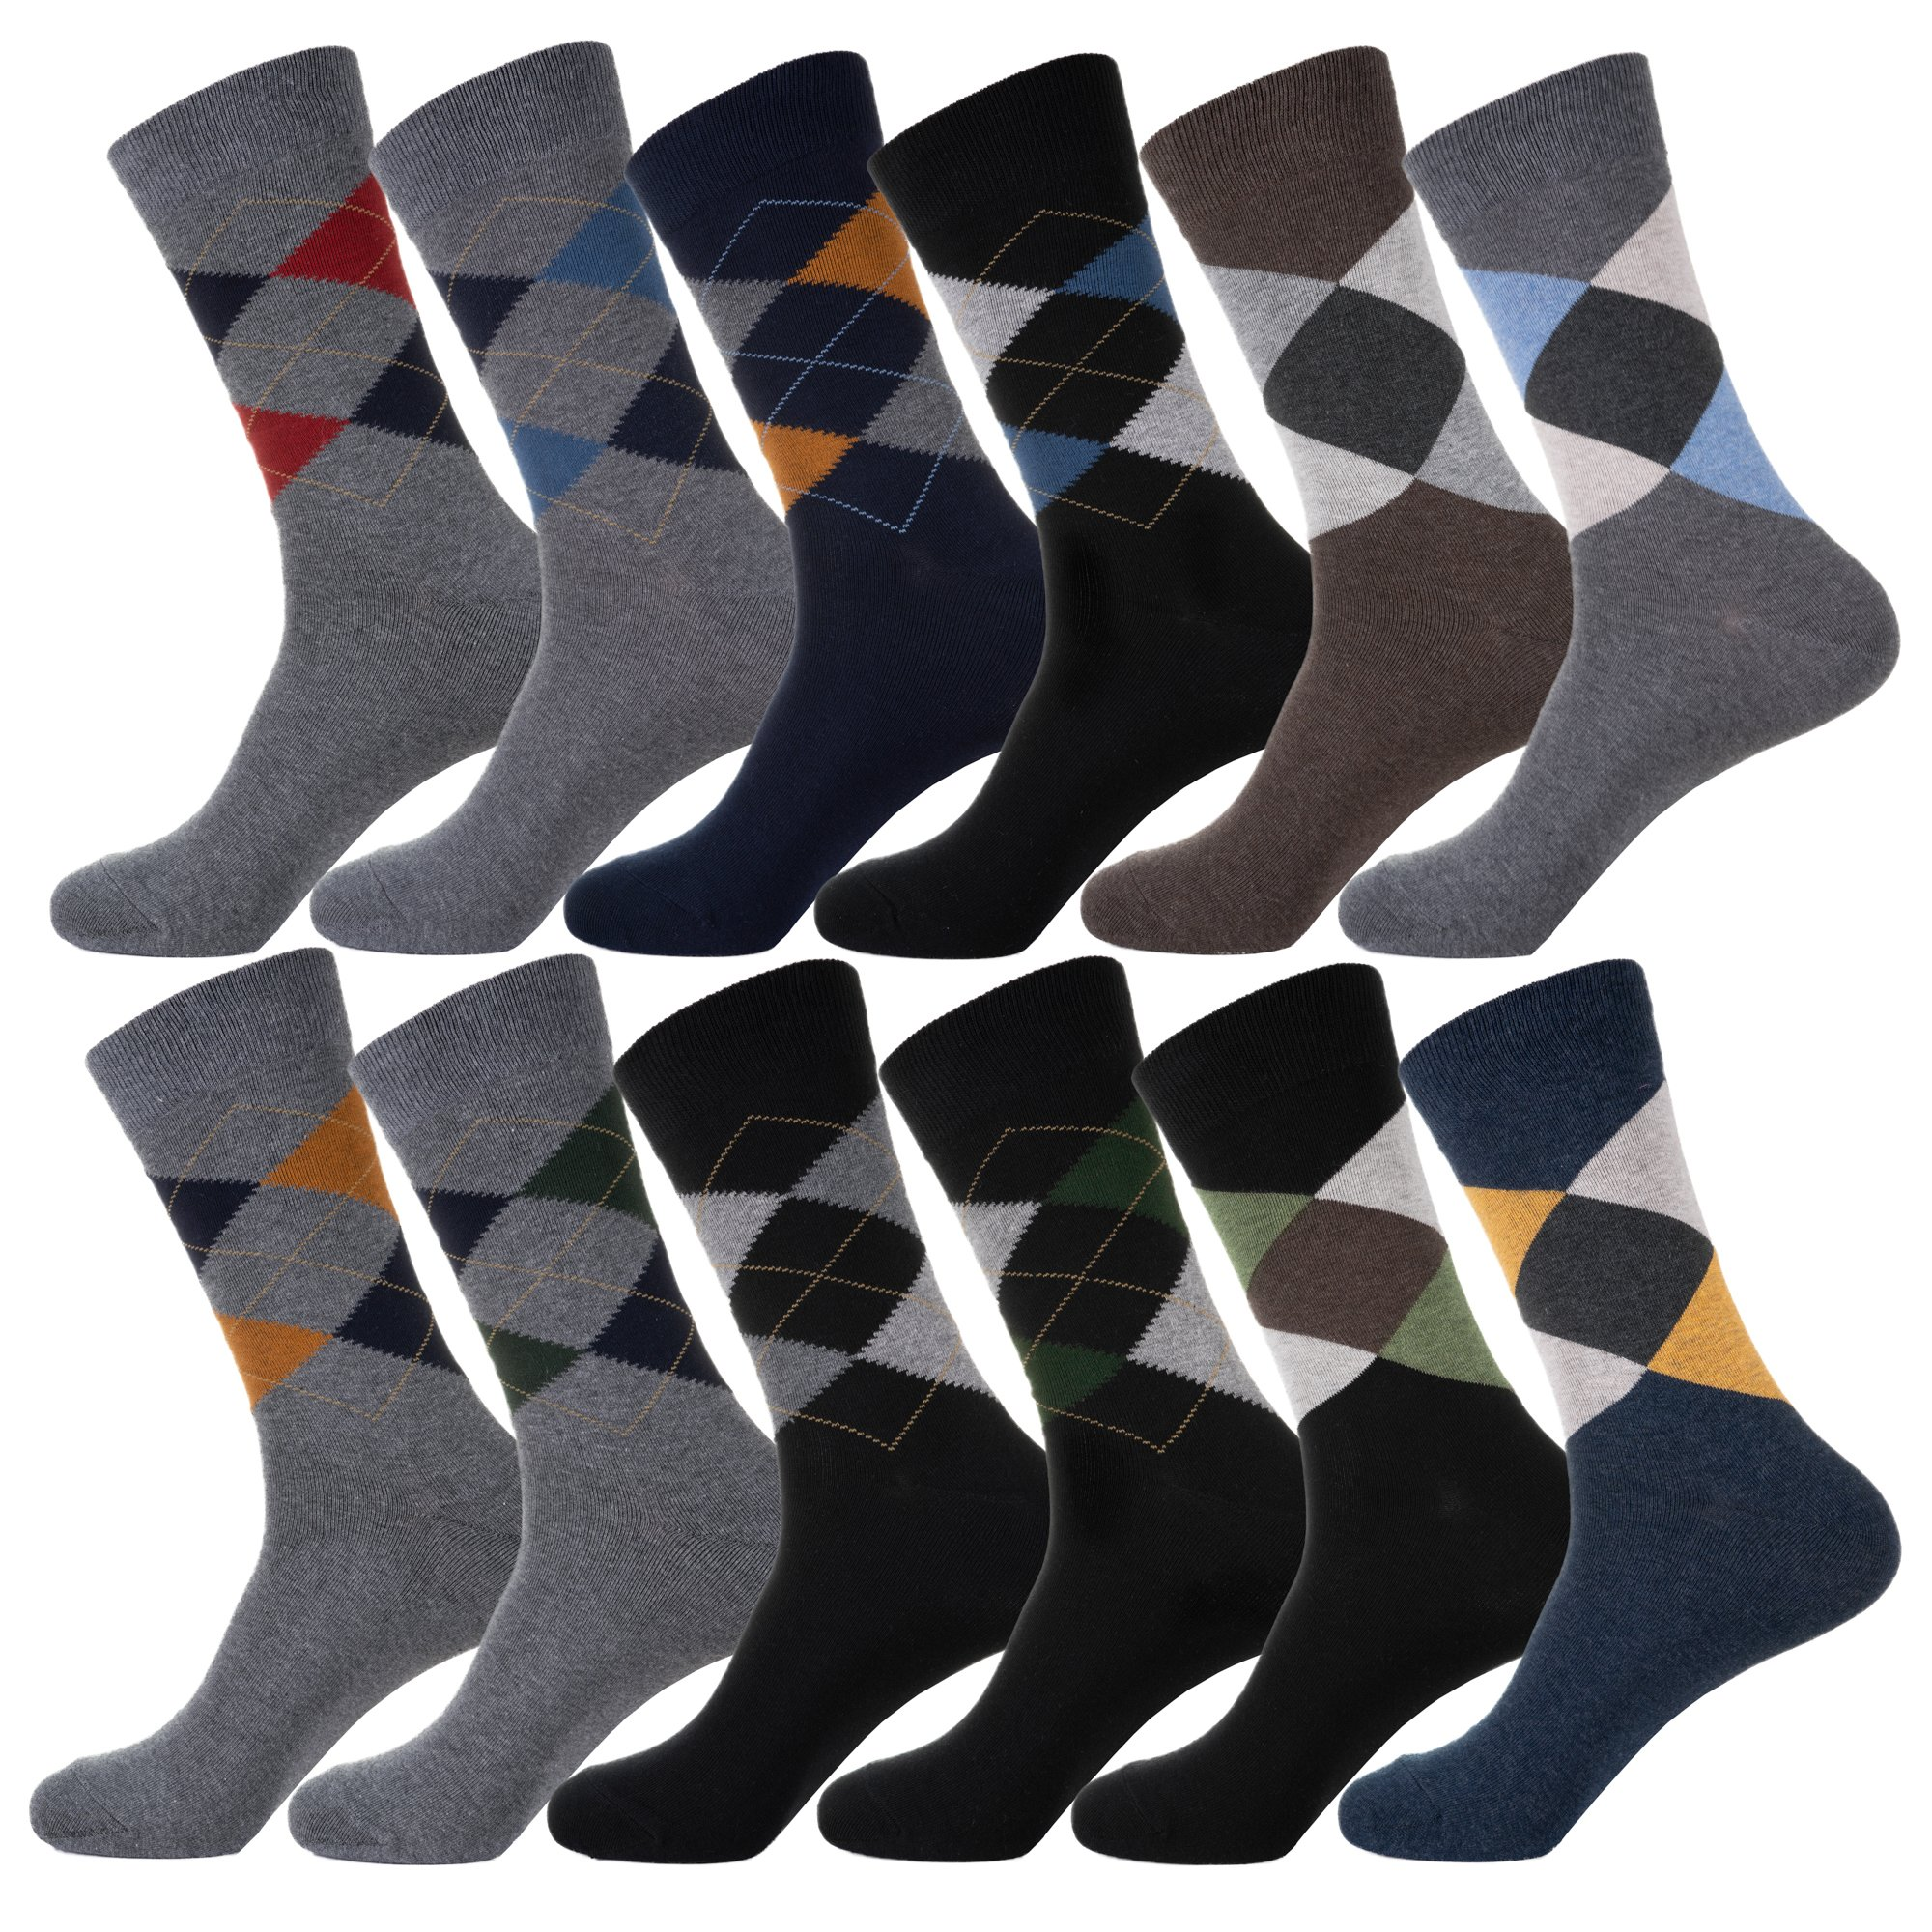 YourFeet Men's 12 Pack Thin Cotton Colorful Stripe Argyle Designed Business Dress Socks Gift Size 9-12 (Argyle assorted)